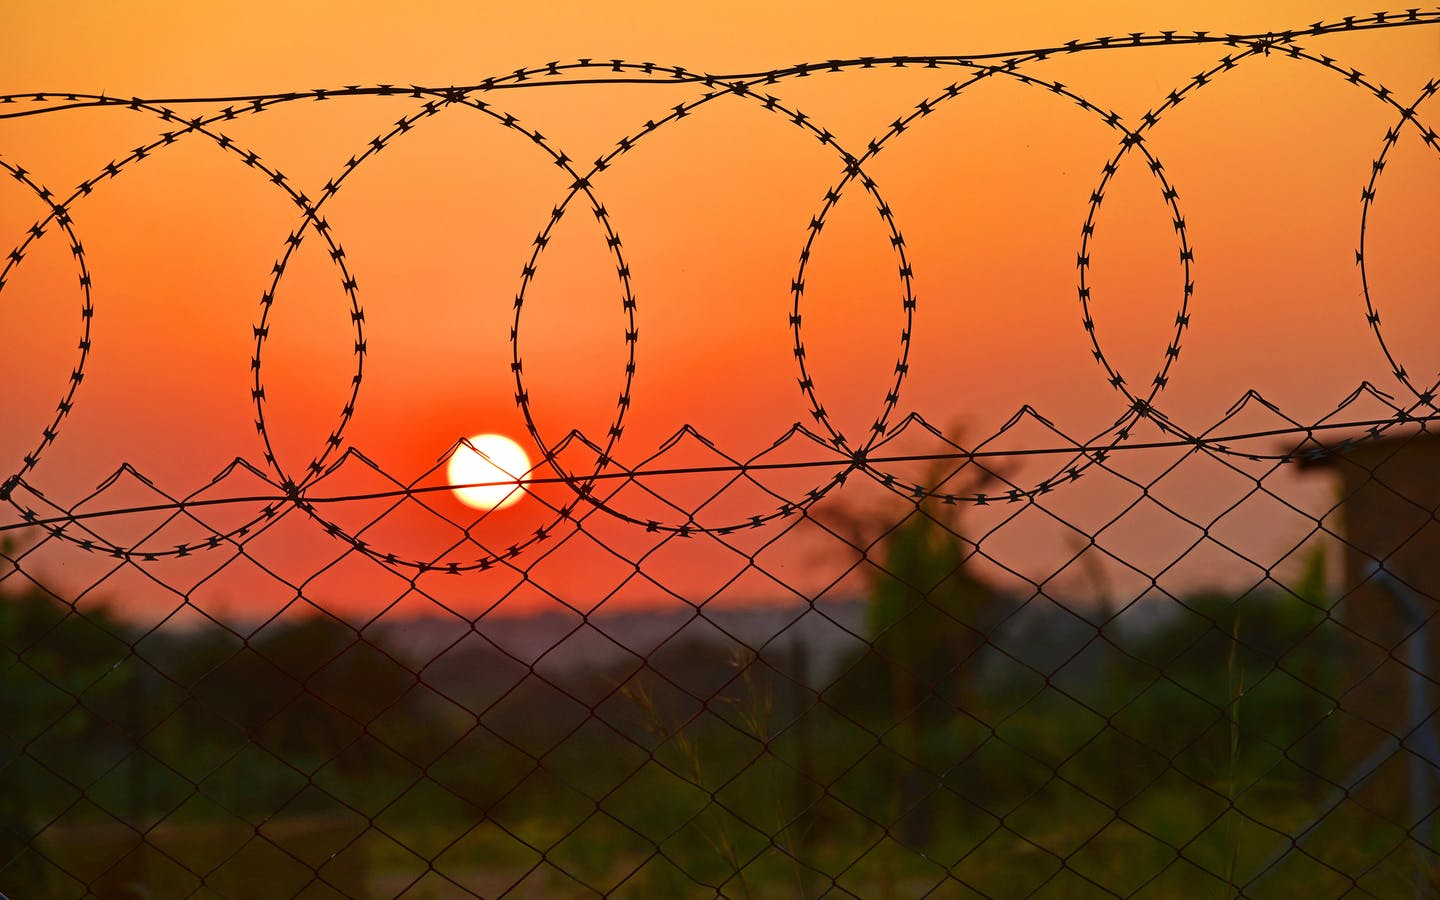 Barbed wire fence and sunset, Eastern Cape, South Africa.